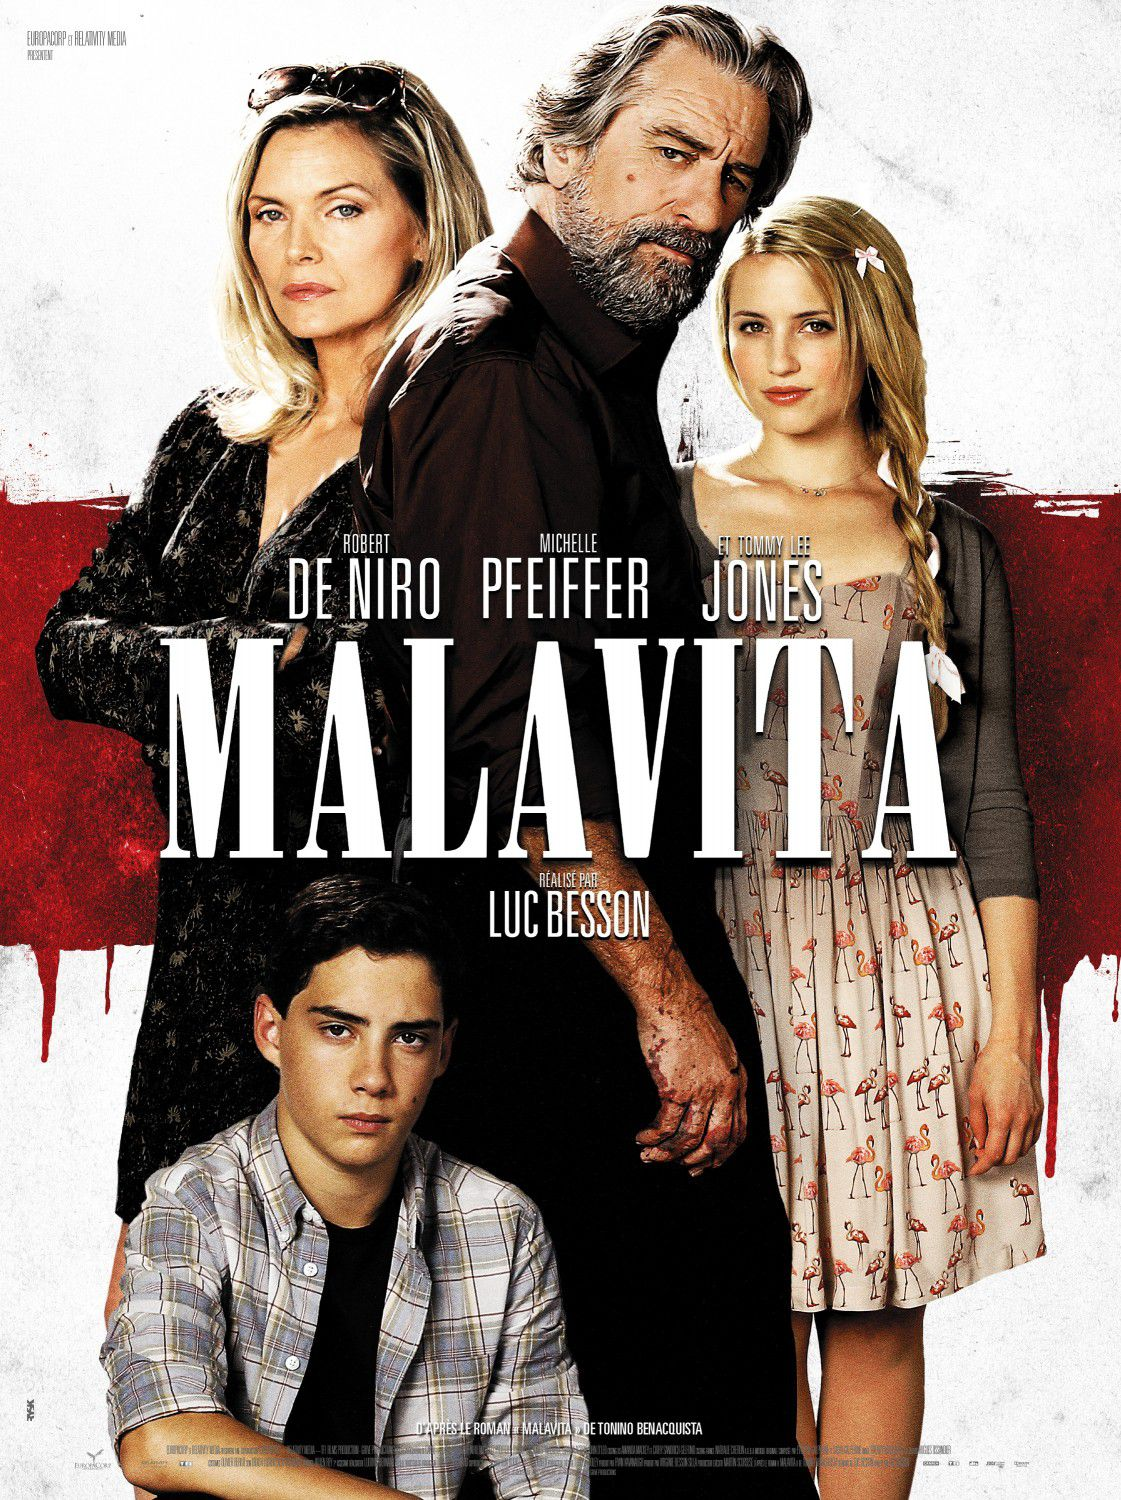 Cose nostre - Malavita - the Family - Robert DeNiro - Michelle Pfeiffer - Tommy Lee Jones - Luc Besson film poster